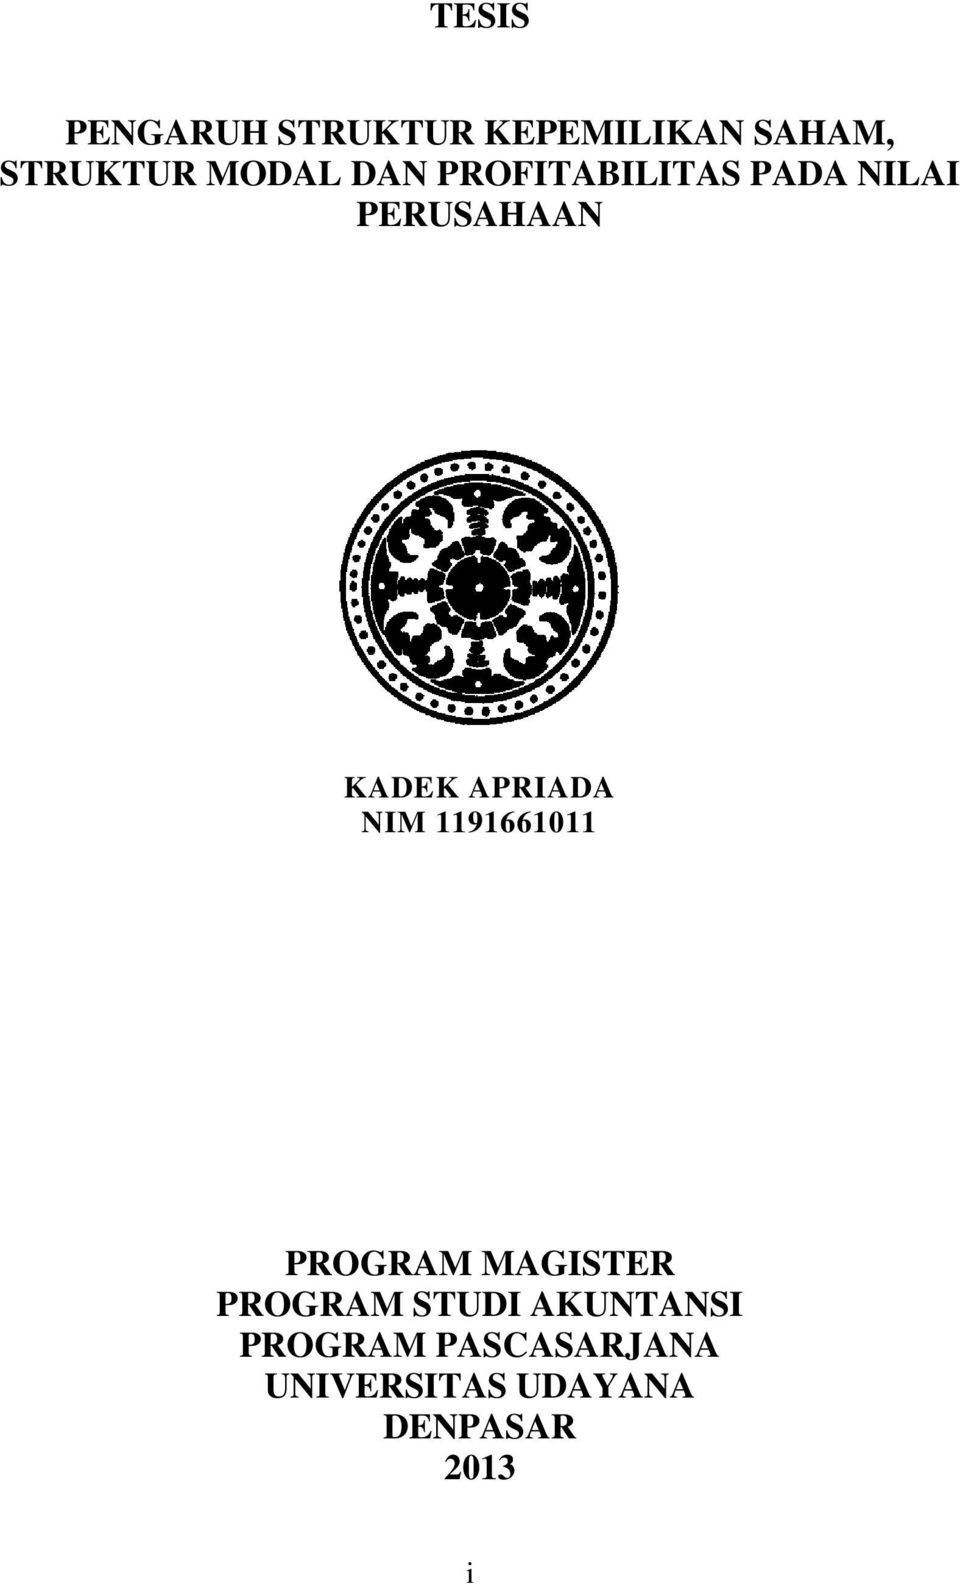 APRIADA NIM 1191661011 PROGRAM MAGISTER PROGRAM STUDI